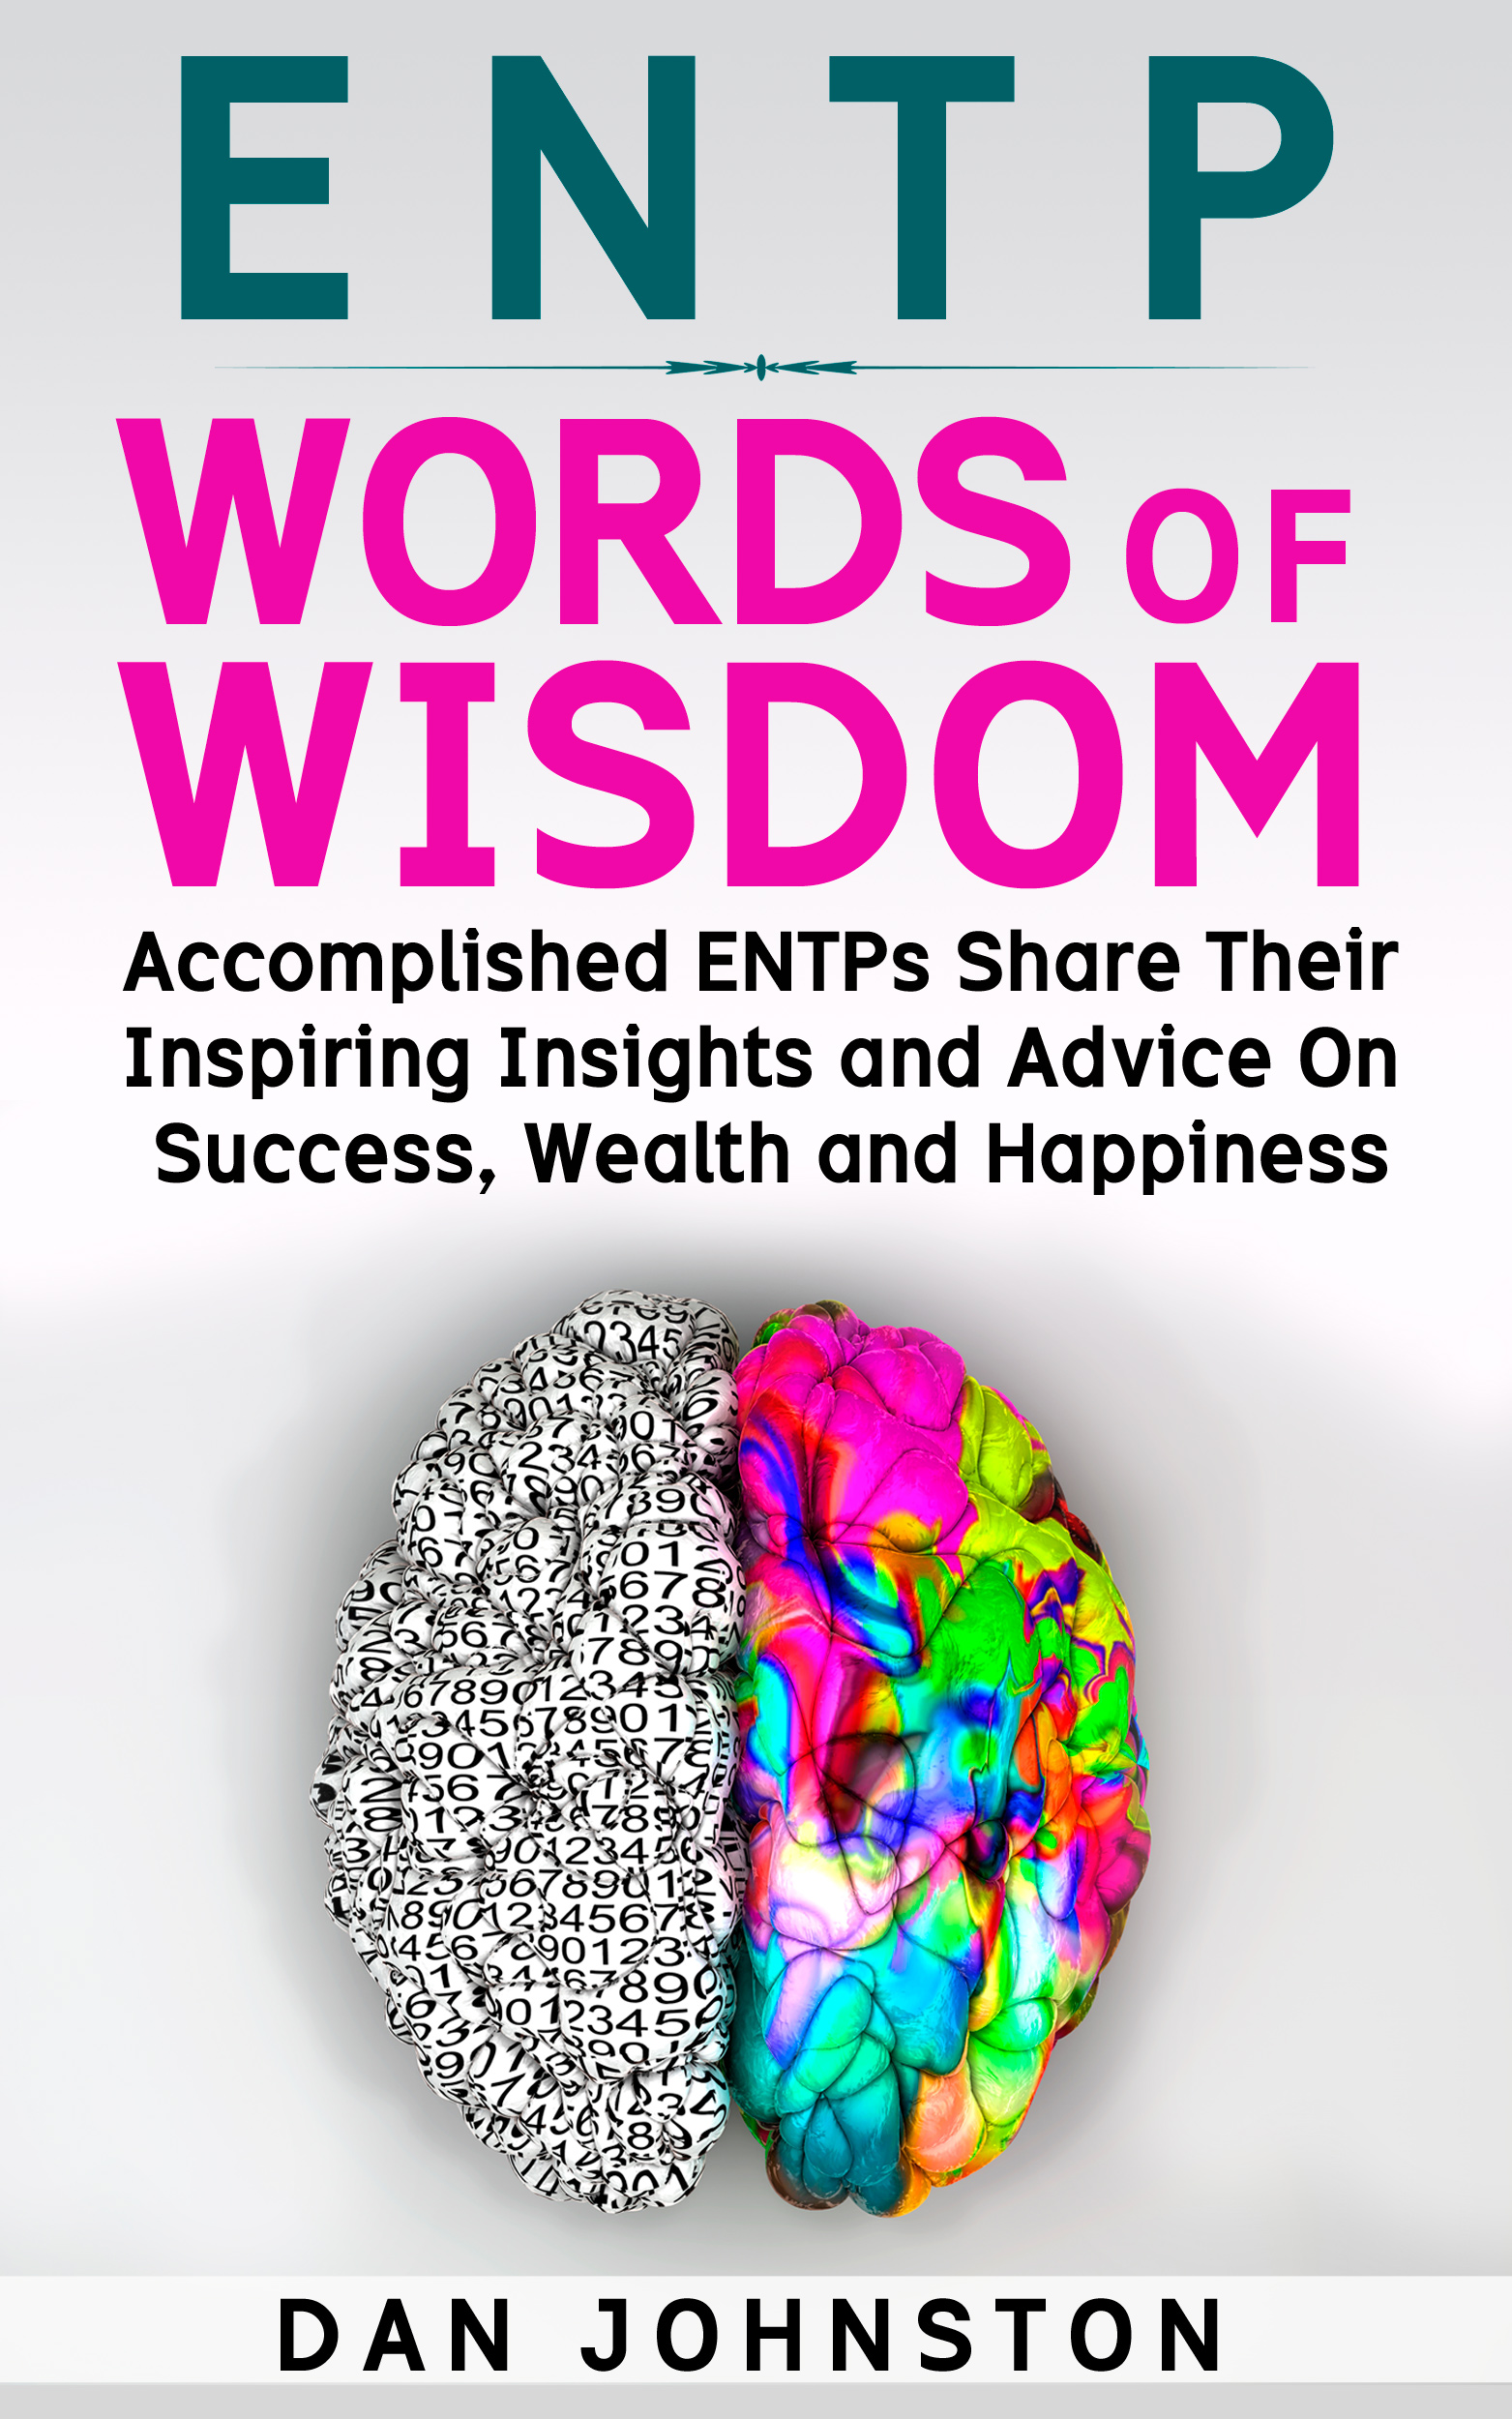 ENTP Words of Wisdom: Accomplished ENTPs Share Their Inspiring Insights and  Advice on Success, Wealth and Happiness, an Ebook by Dan Johnston